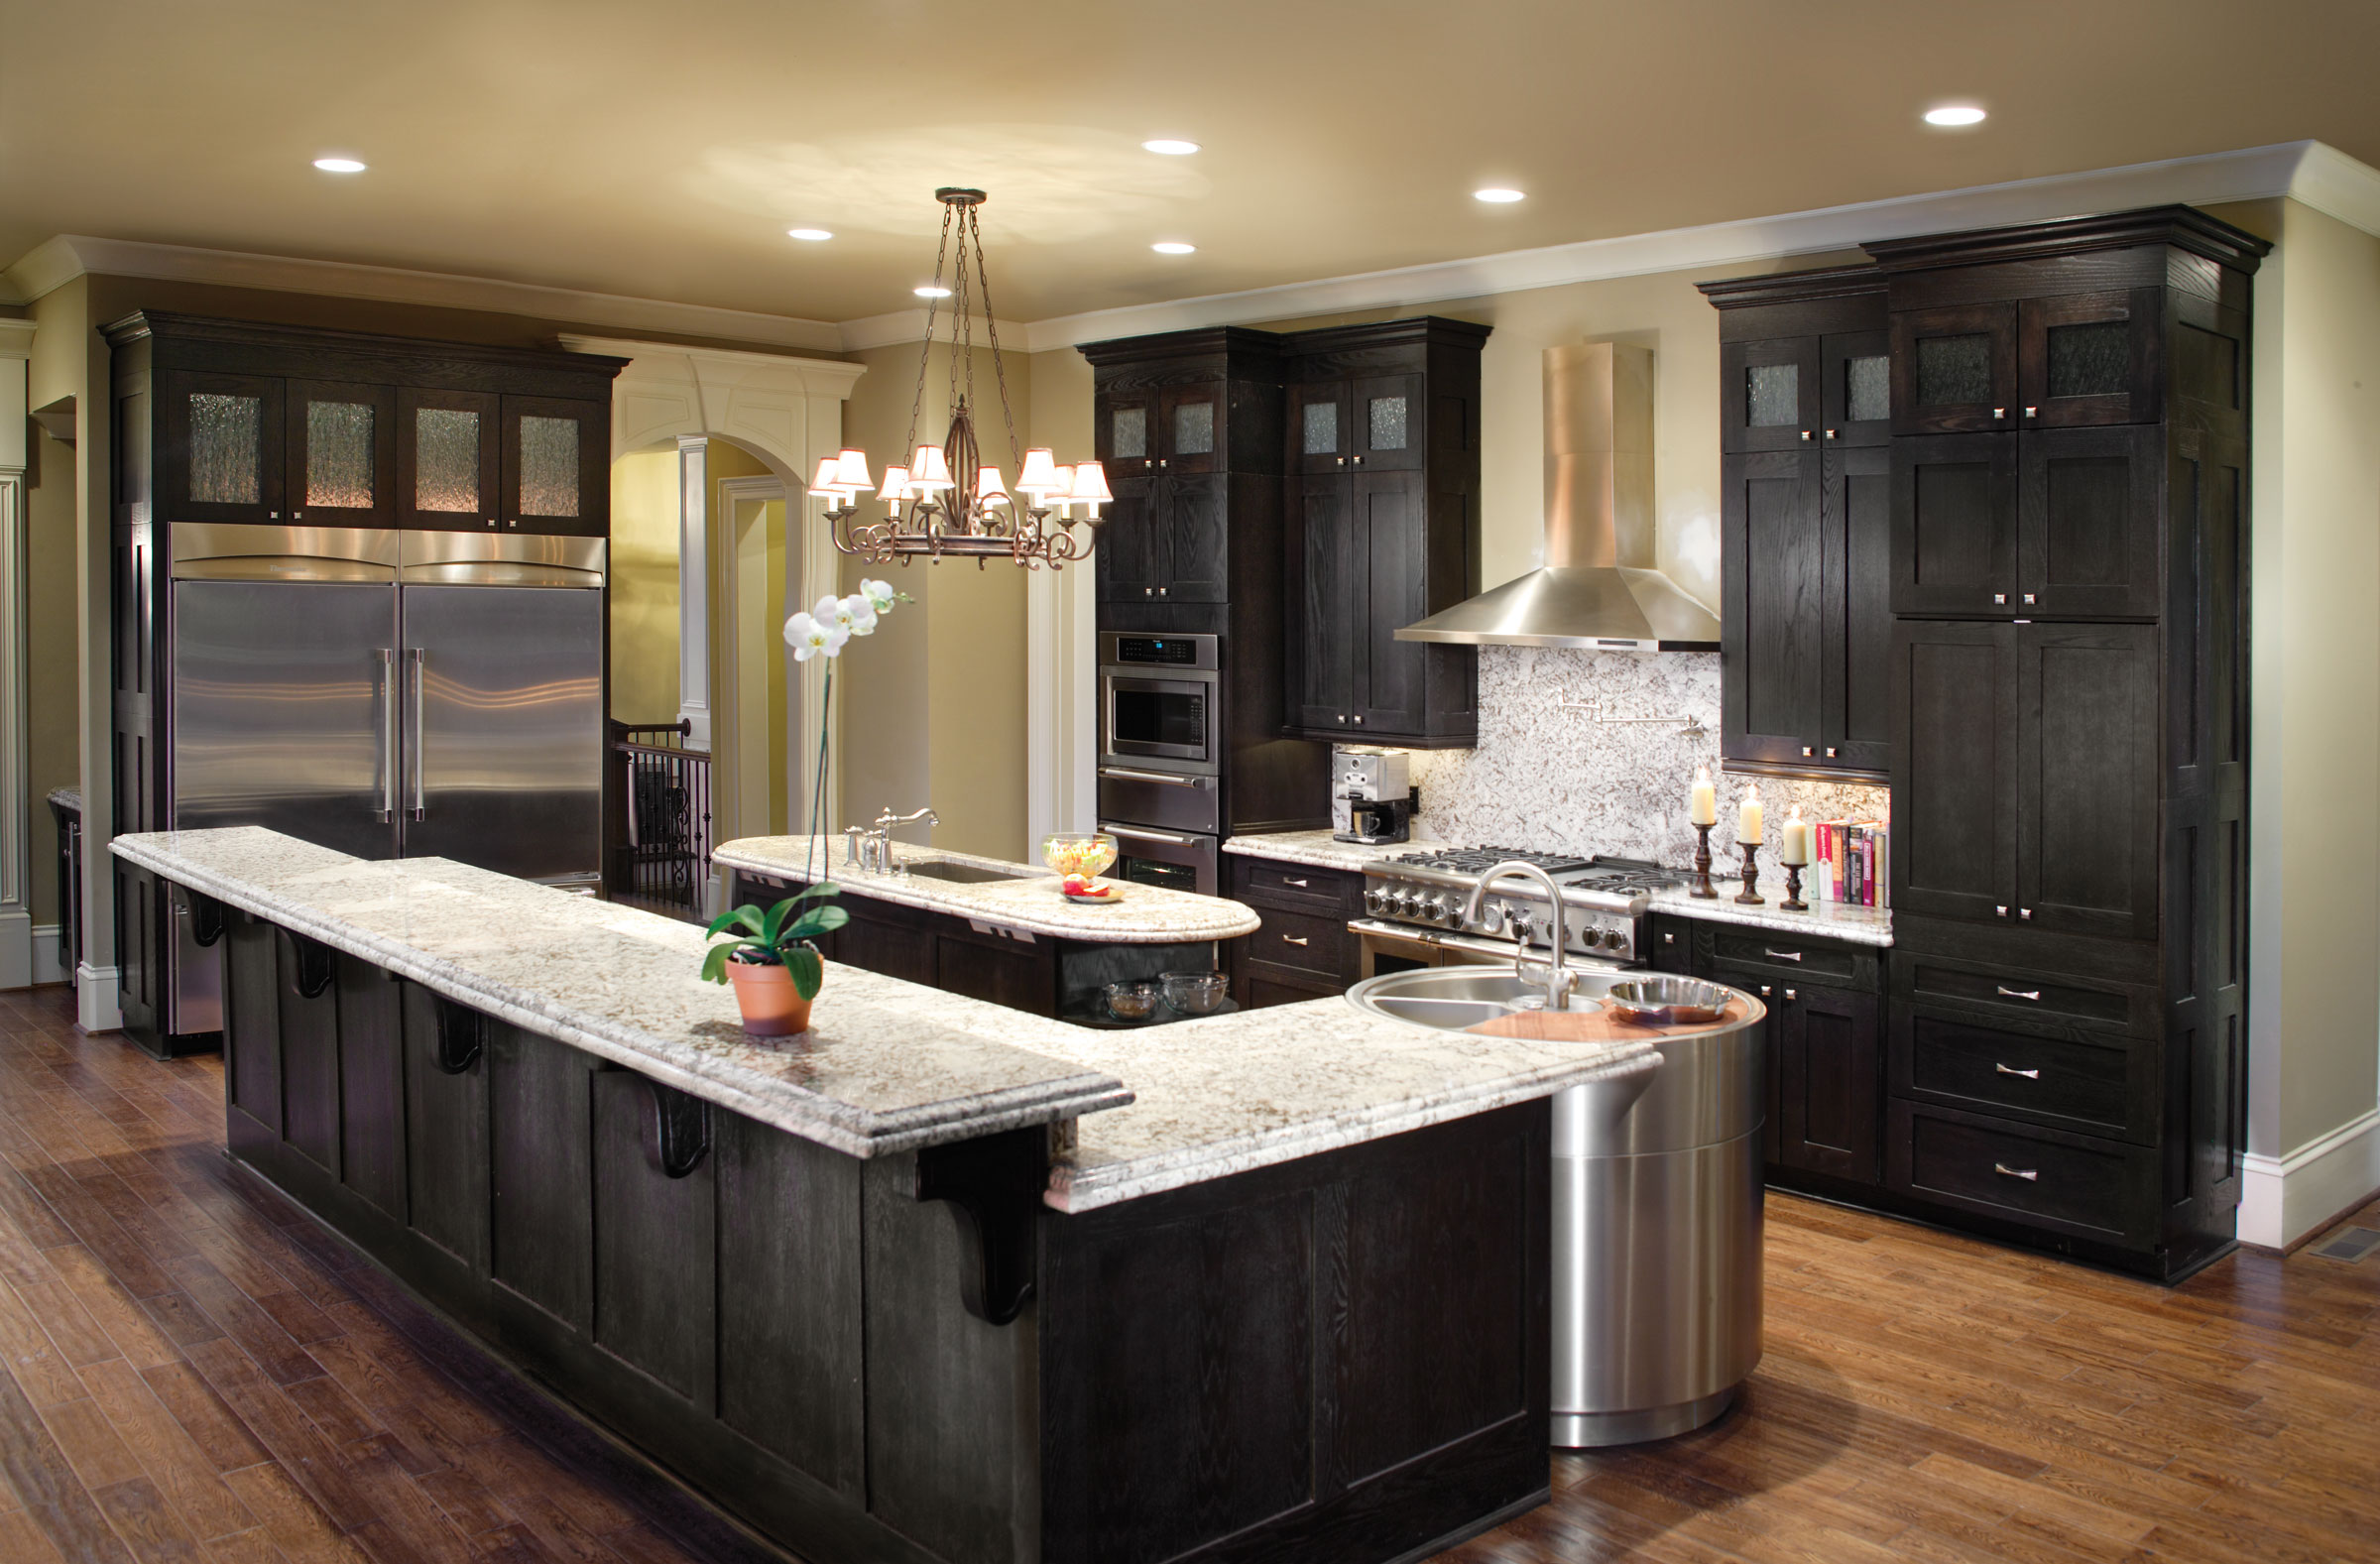 Custom bathroom kitchen cabinets phoenix cabinets by for Black kitchen cabinets photos